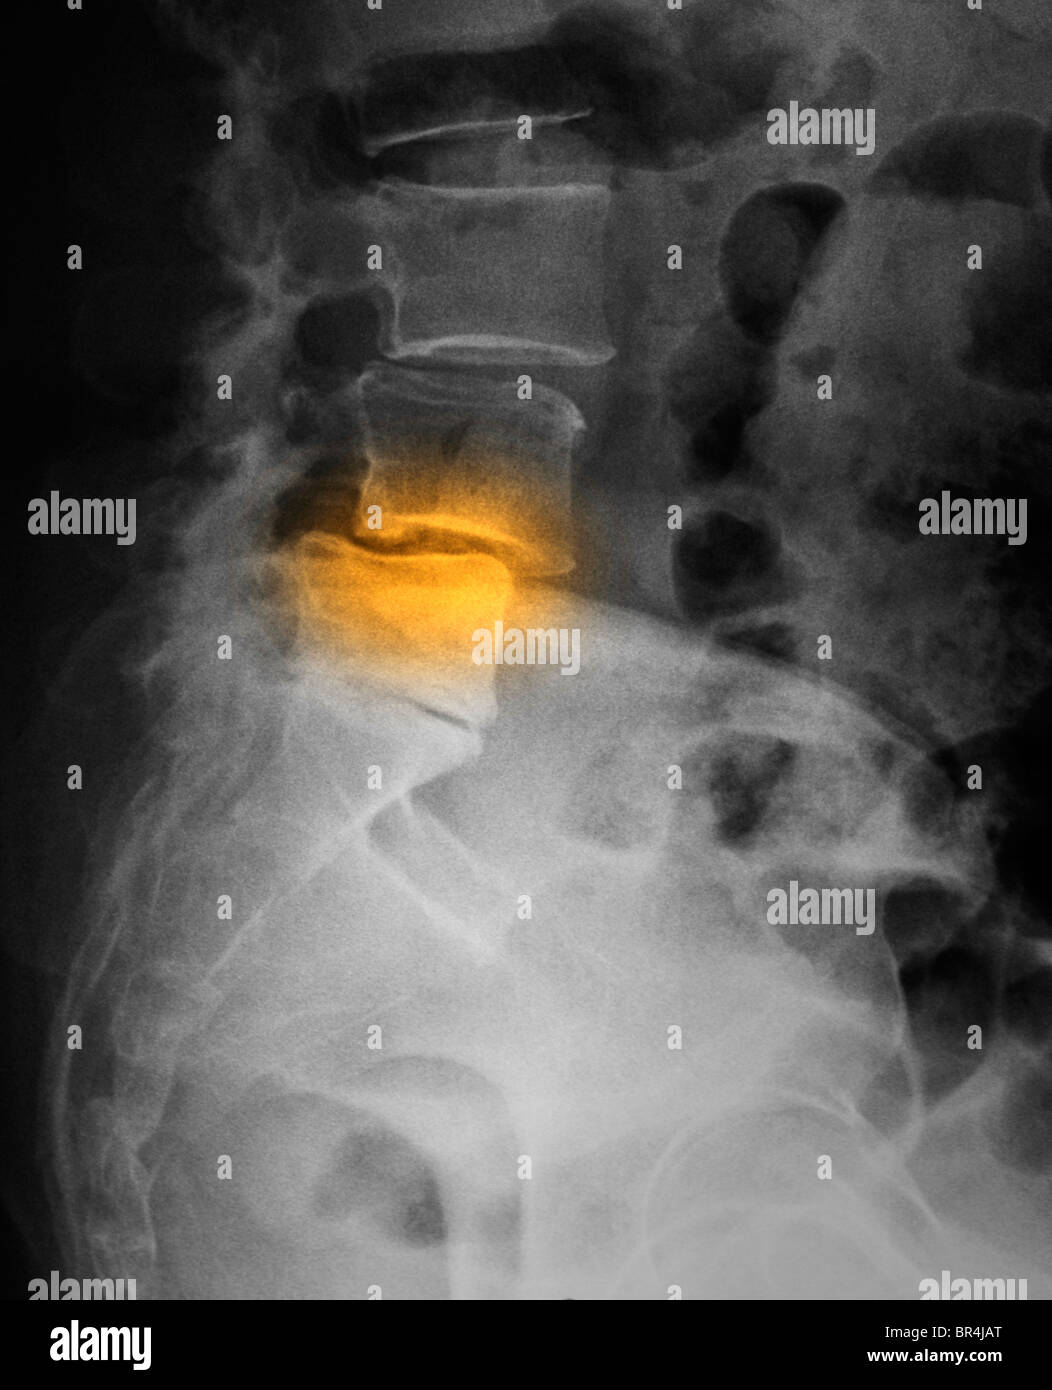 http://c8.alamy.com/comp/BR4JAT/x-ray-showing-spondylolisthesis-of-the-lumbar-spine-BR4JAT.jpg